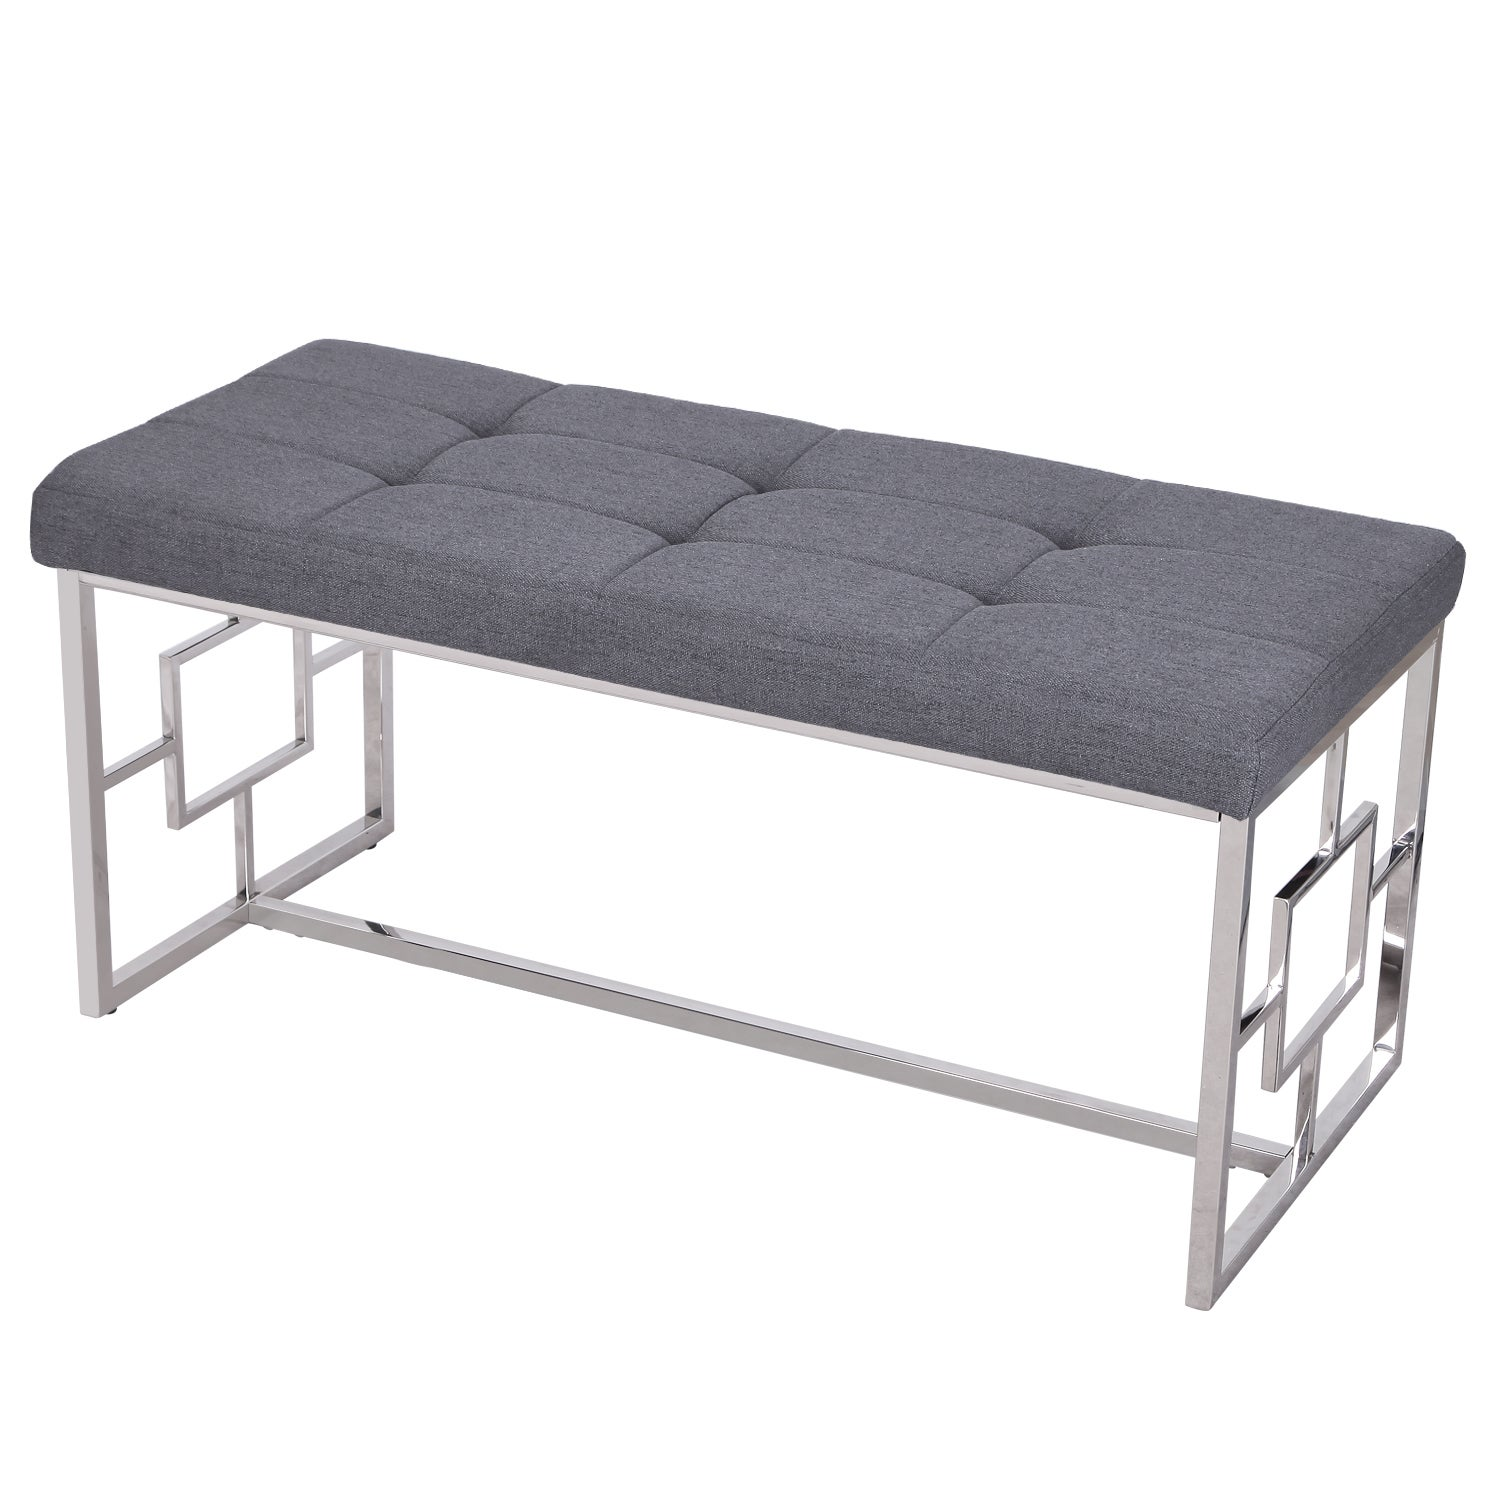 adeco stainless steel bench entryway footstool grey  ebay - picture  of